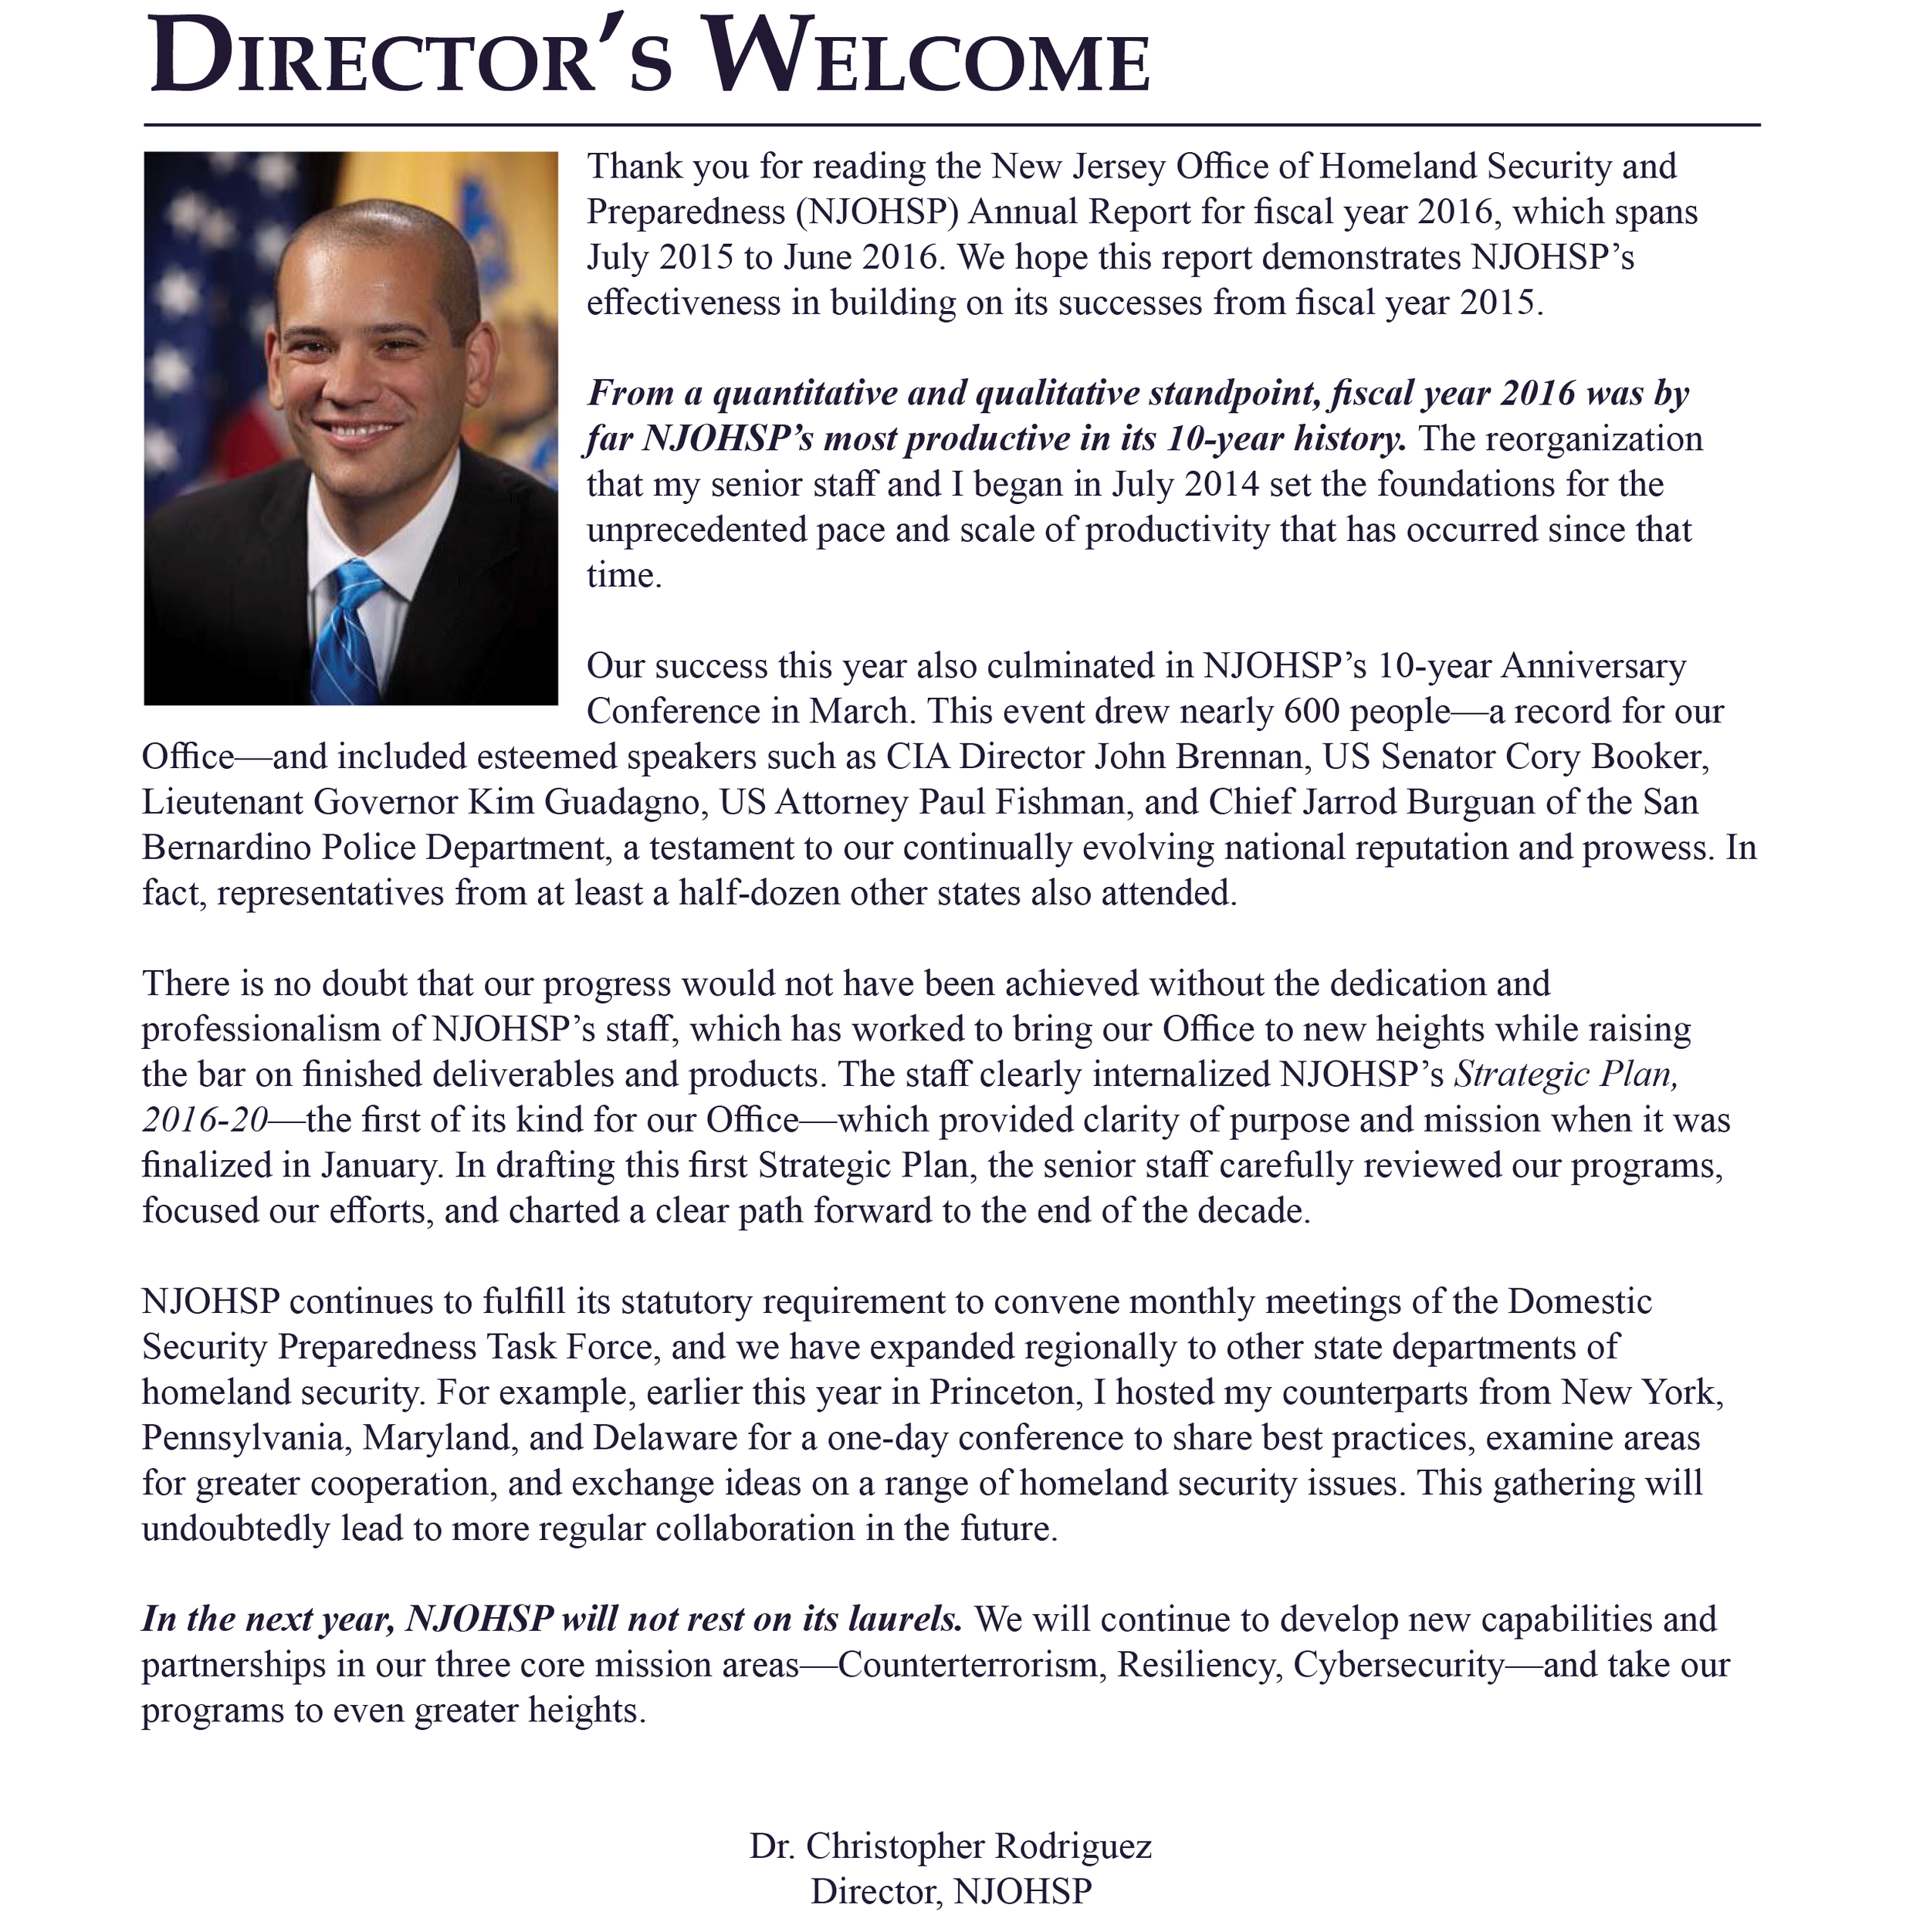 Director's Welcome.png